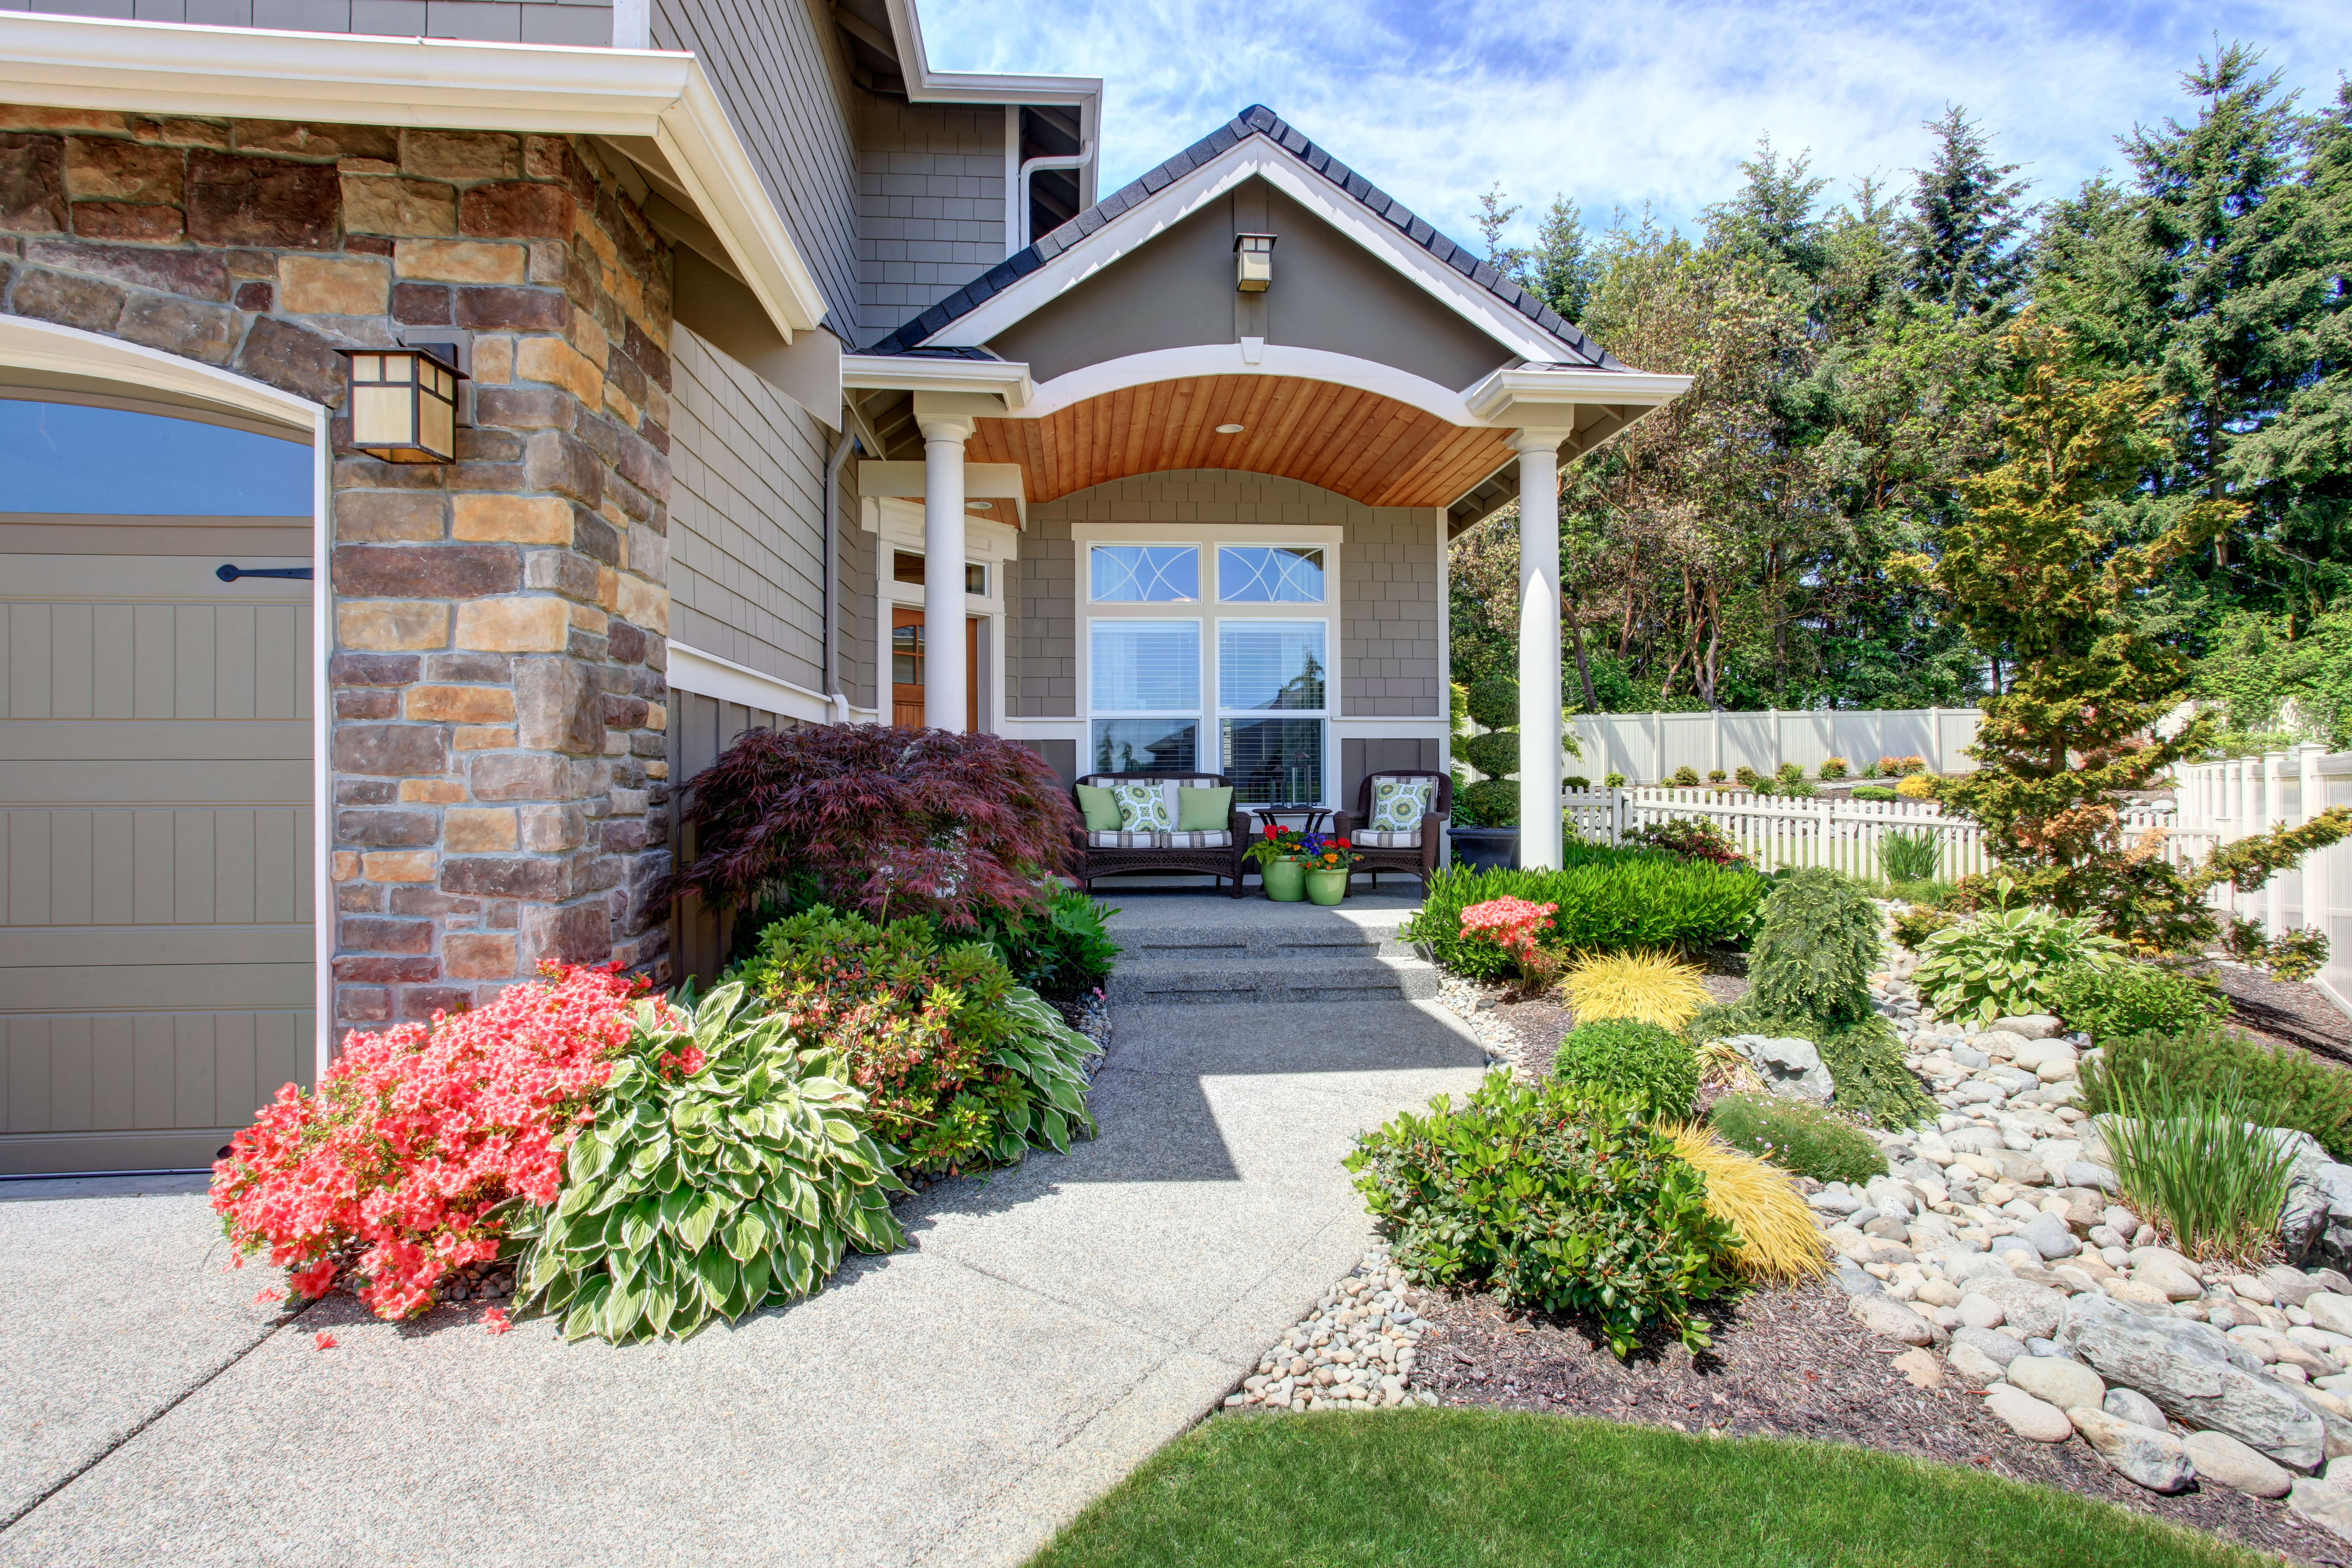 Curb Appeal Can Make Or Break The Sale Of Your Home!